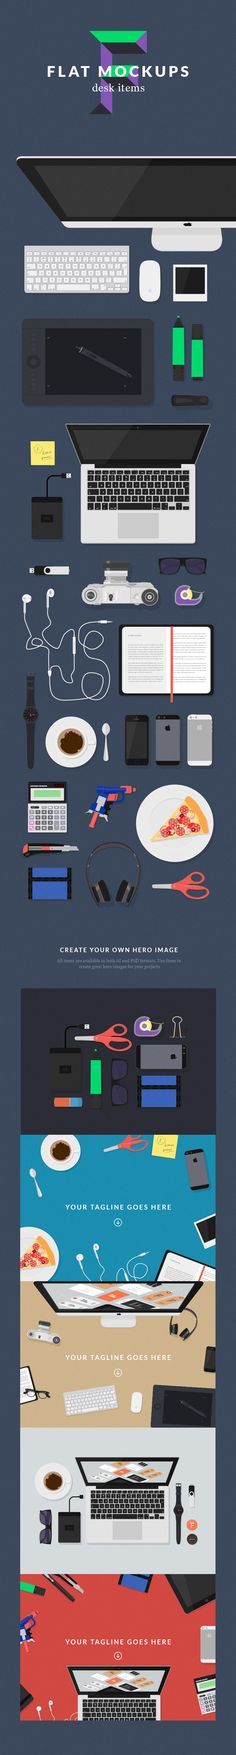 Create your own hero image from this psd of various flat items #andstudio